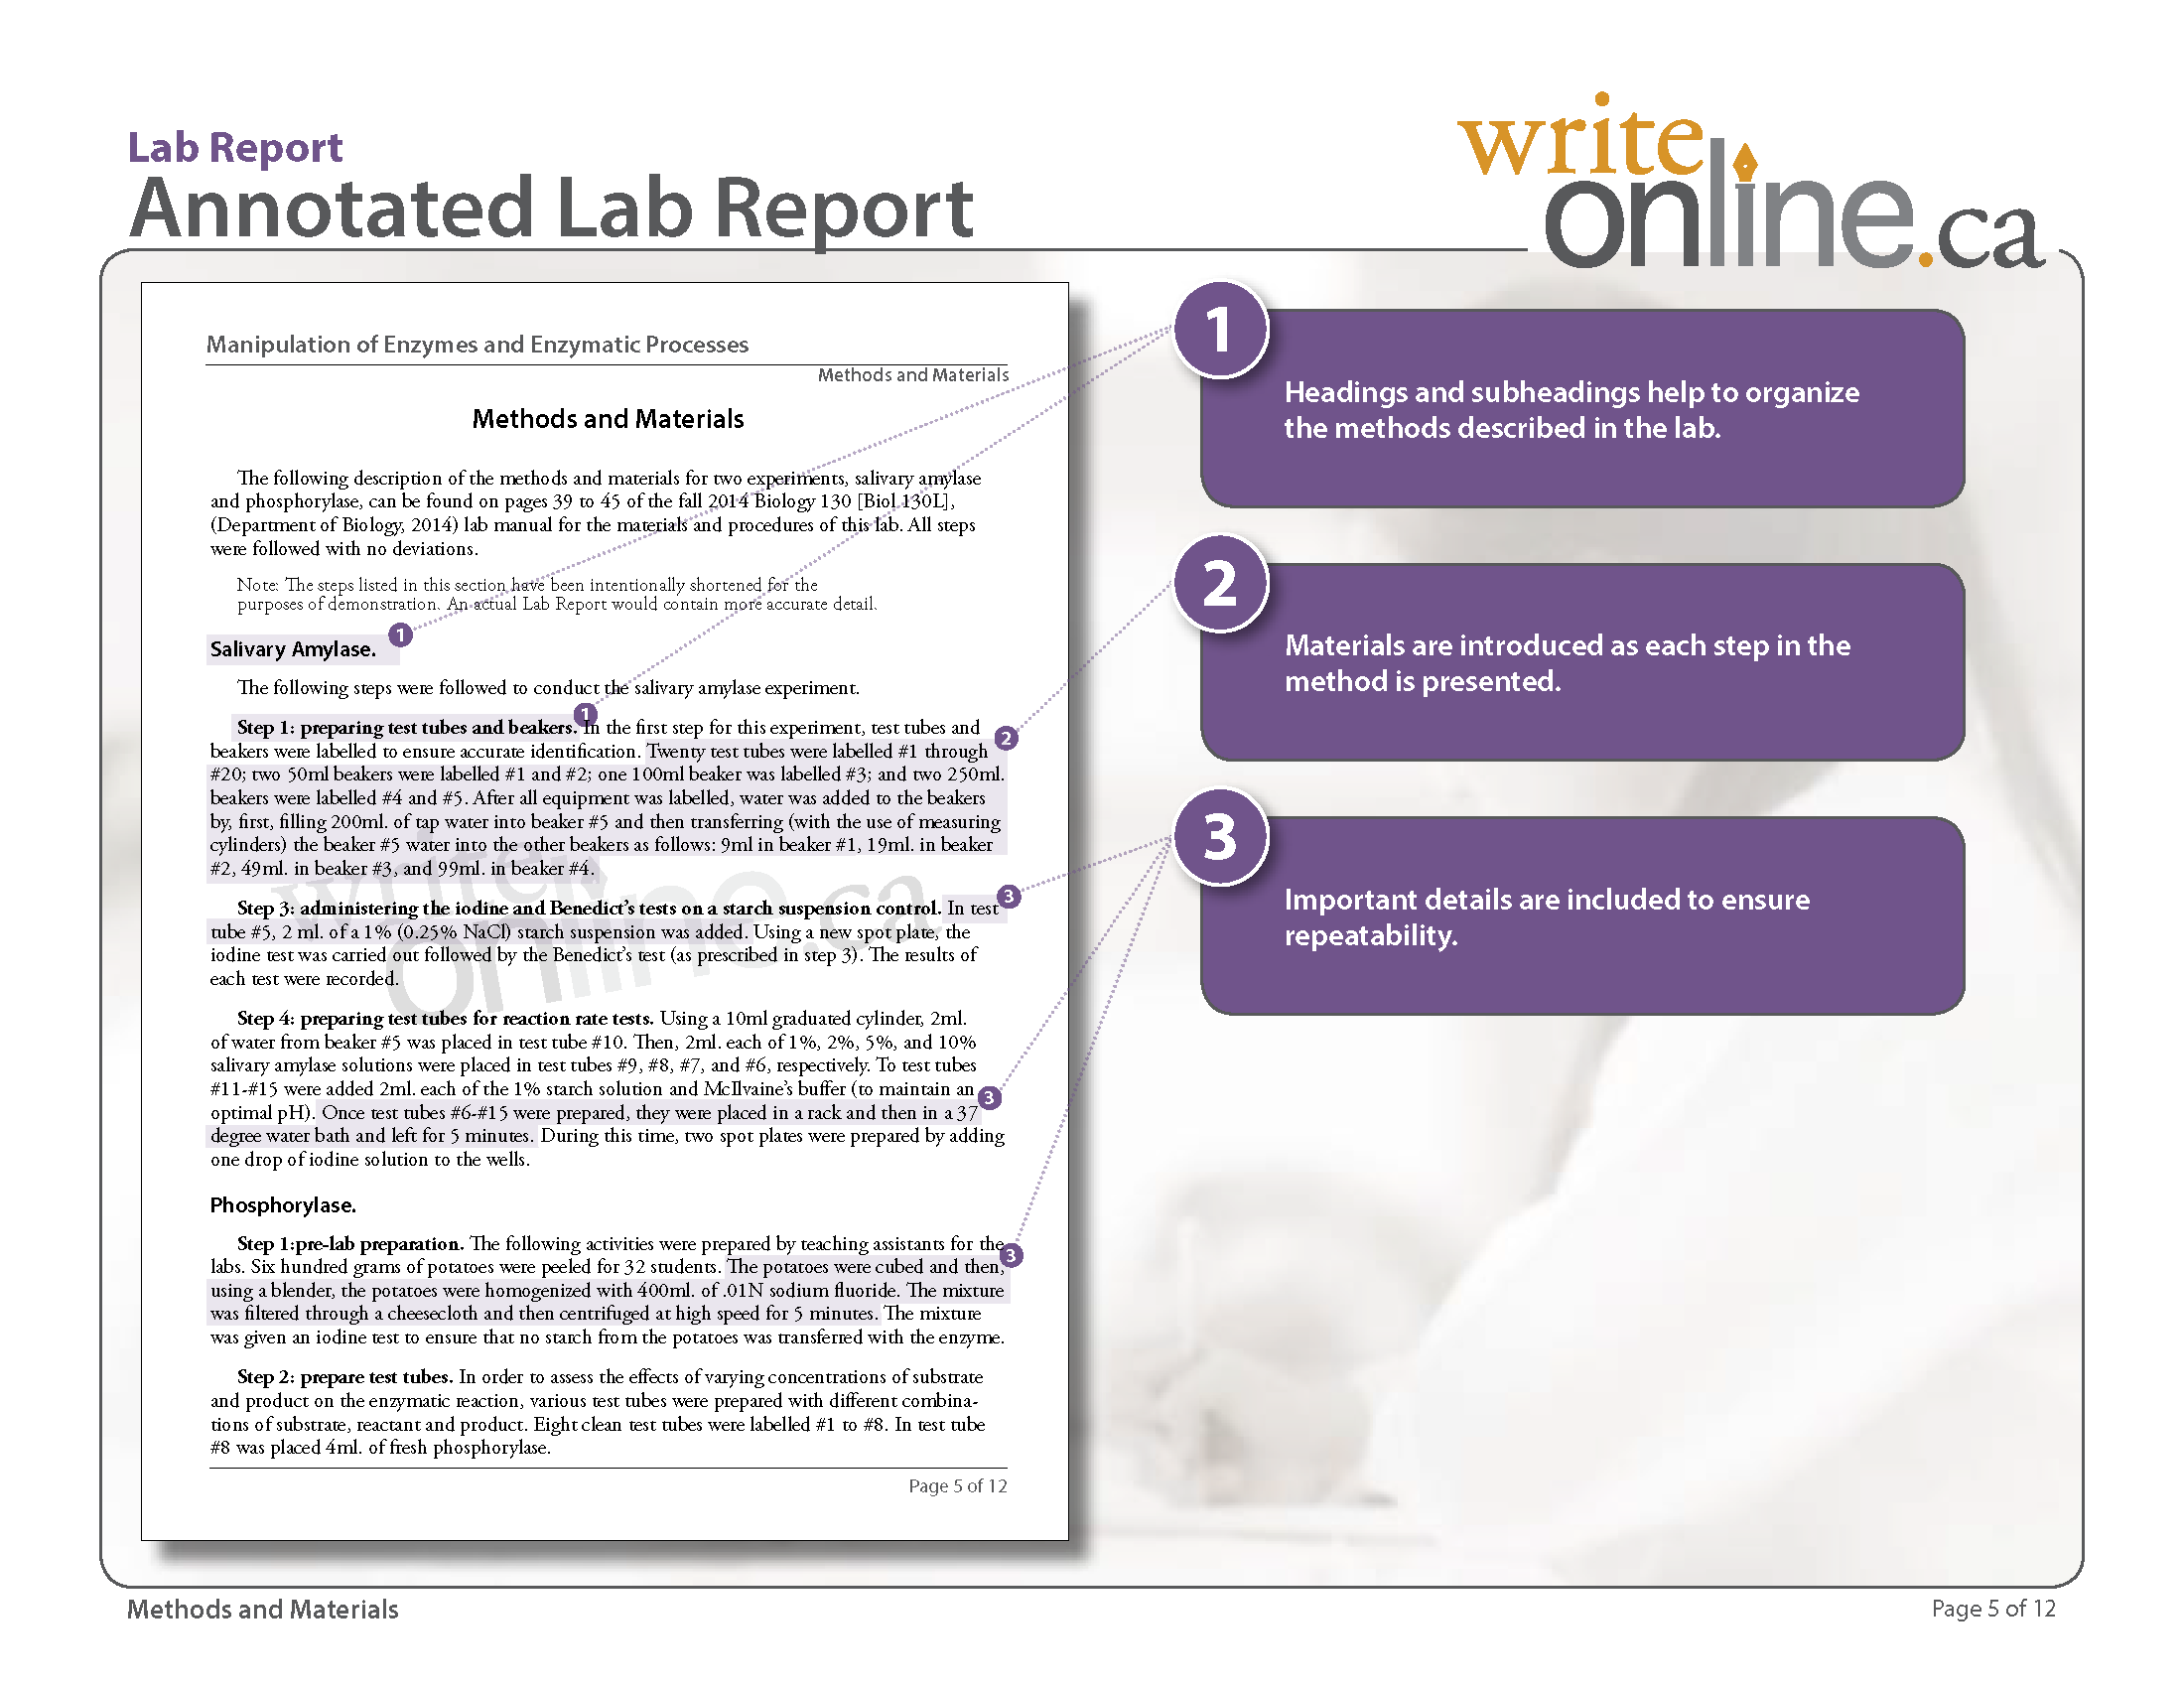 006 Research Paper Labreport Annotatedfull Page 05 Examples Of Materials And Methods Stirring In Full